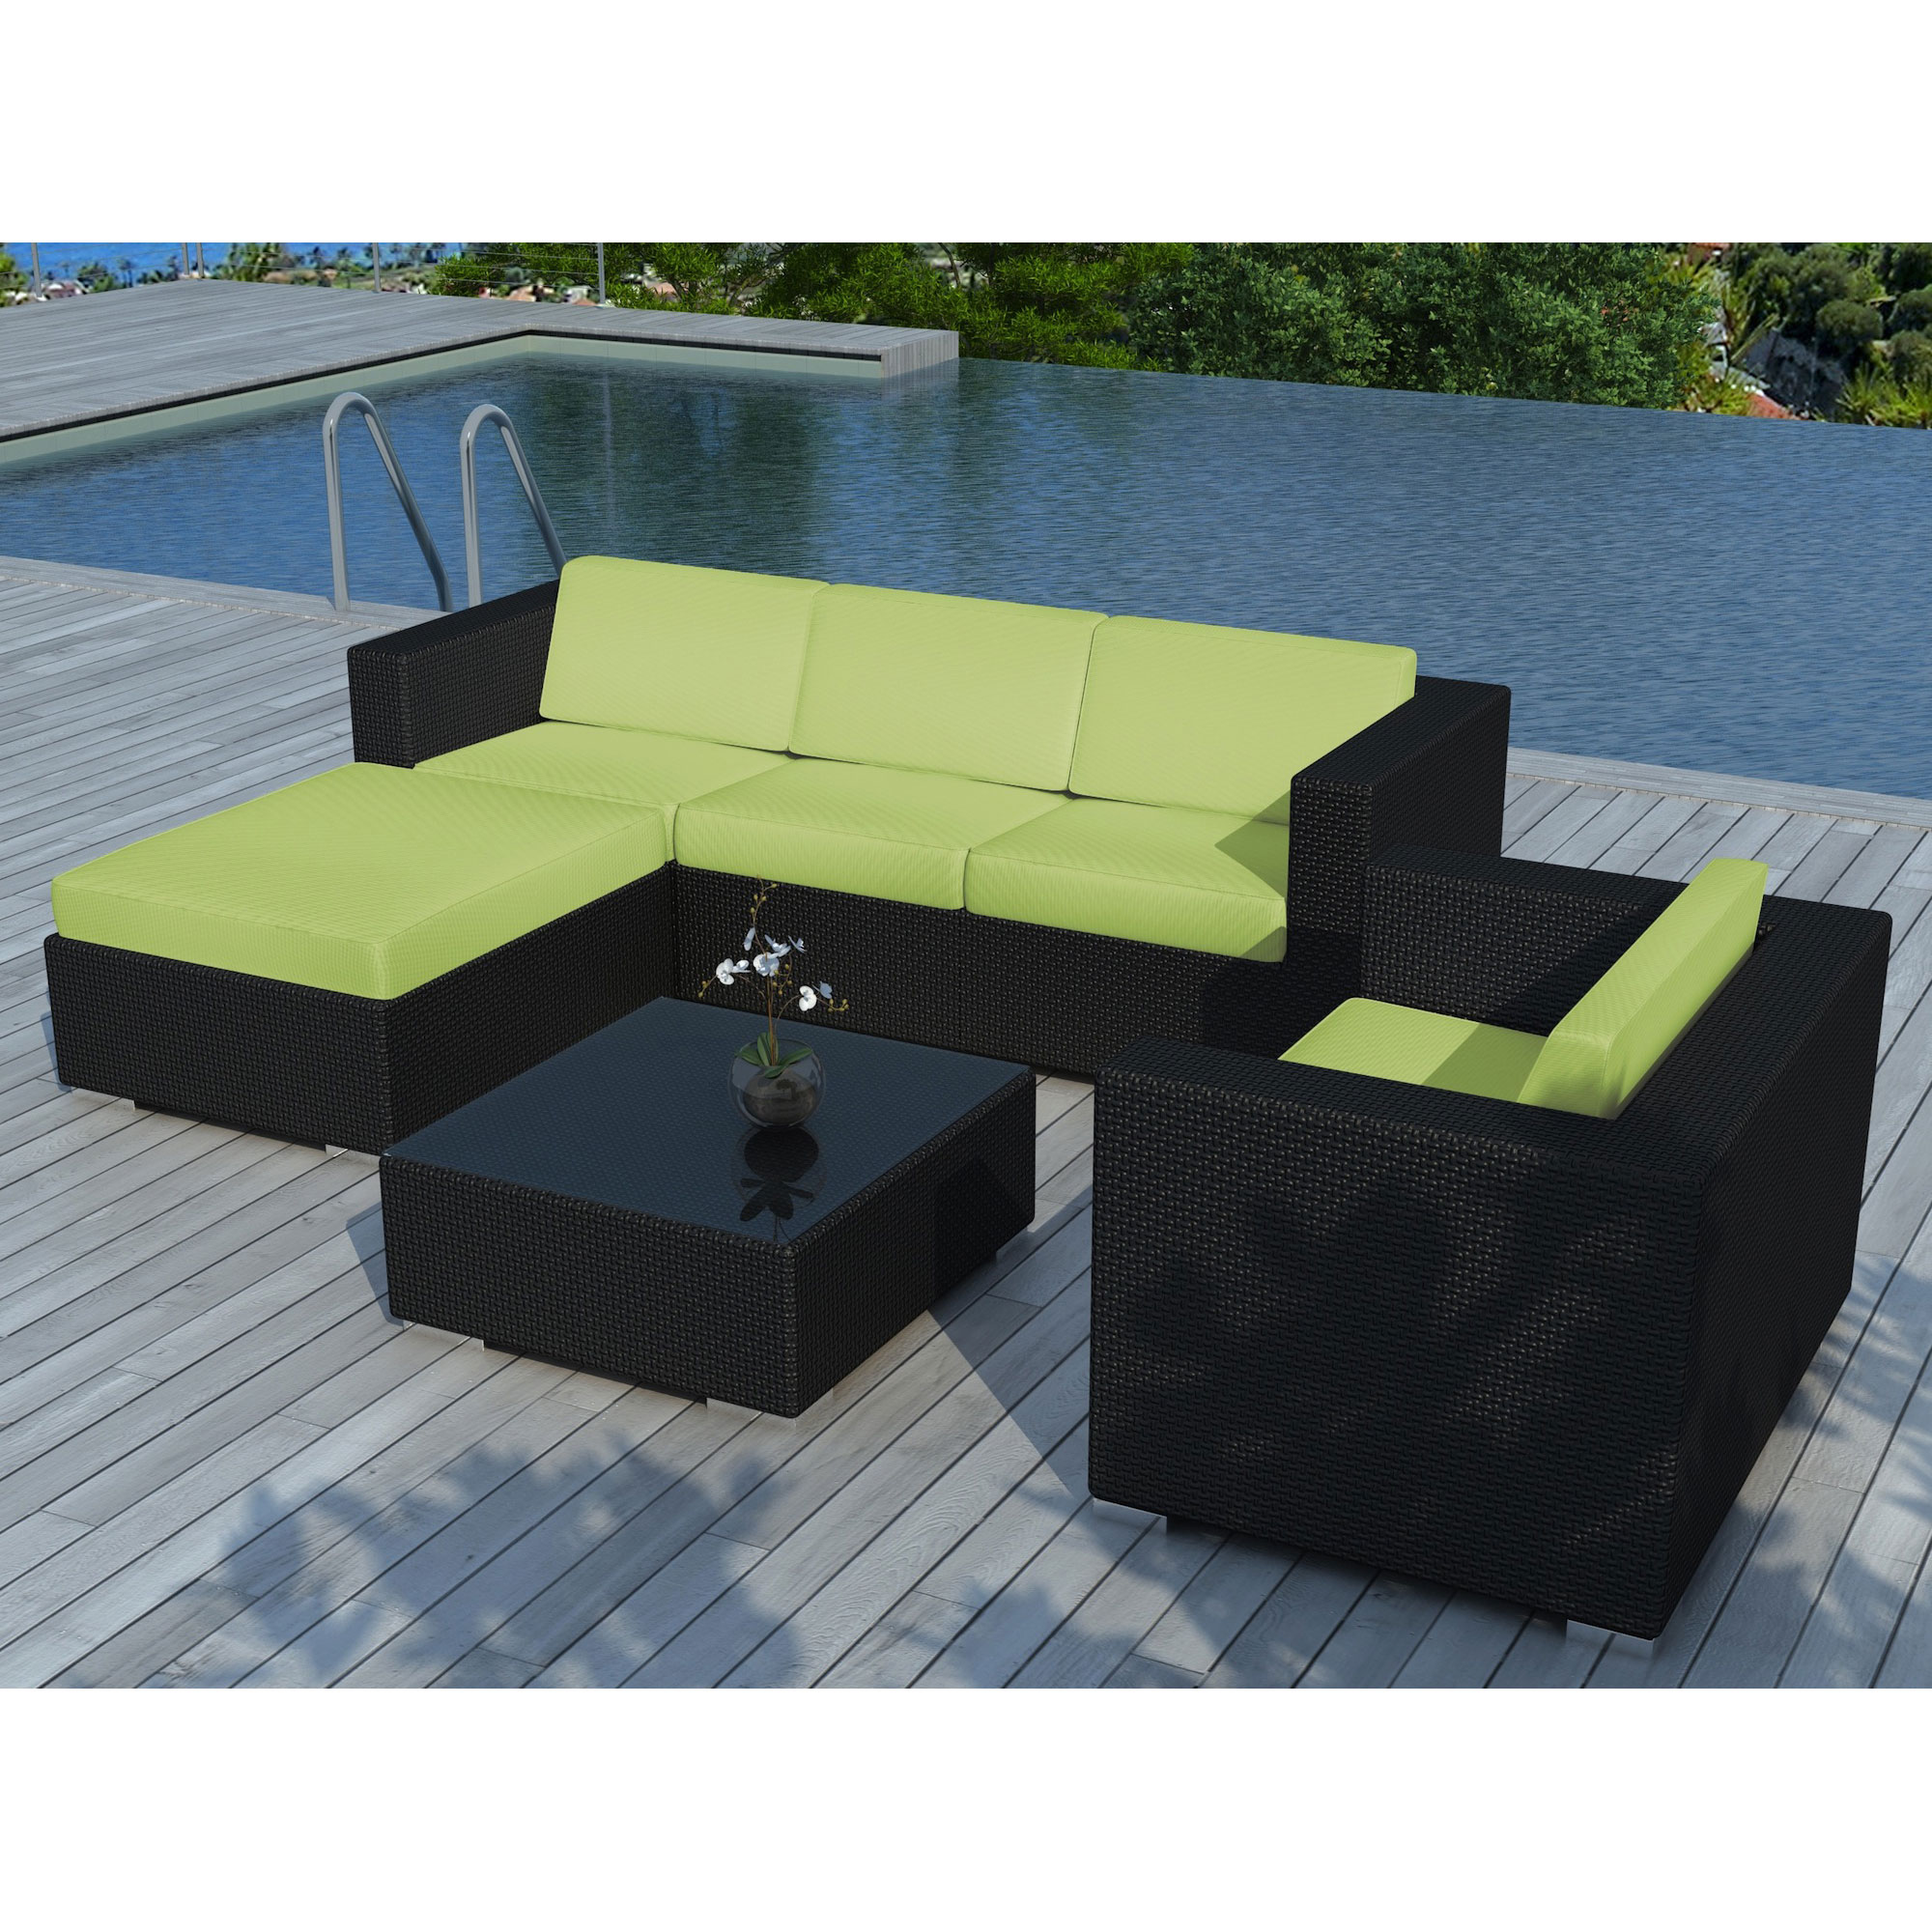 salon de jardin en resine pas cher id es de d coration int rieure french decor. Black Bedroom Furniture Sets. Home Design Ideas